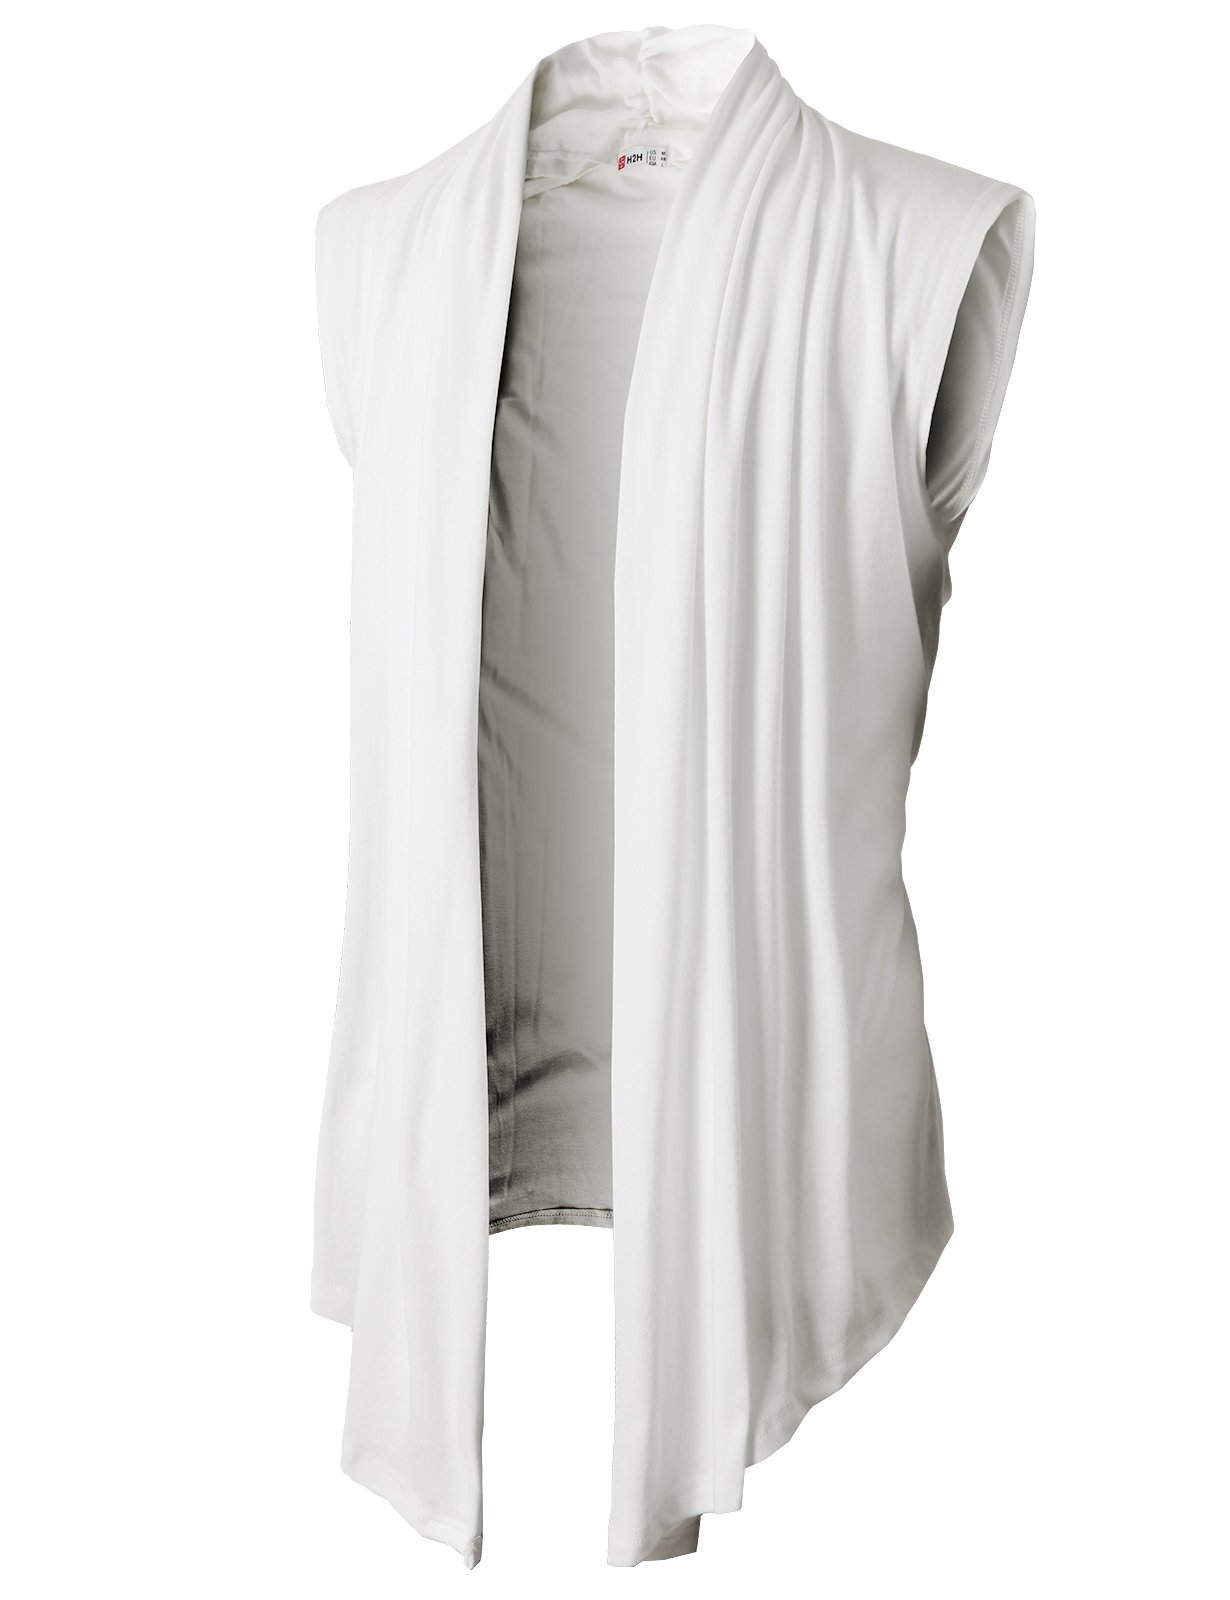 H2H Men's Shawl Collar Sleeveless Cardigan With No Button WHITE US L/Asia XL (KMOCASL01) by H2H